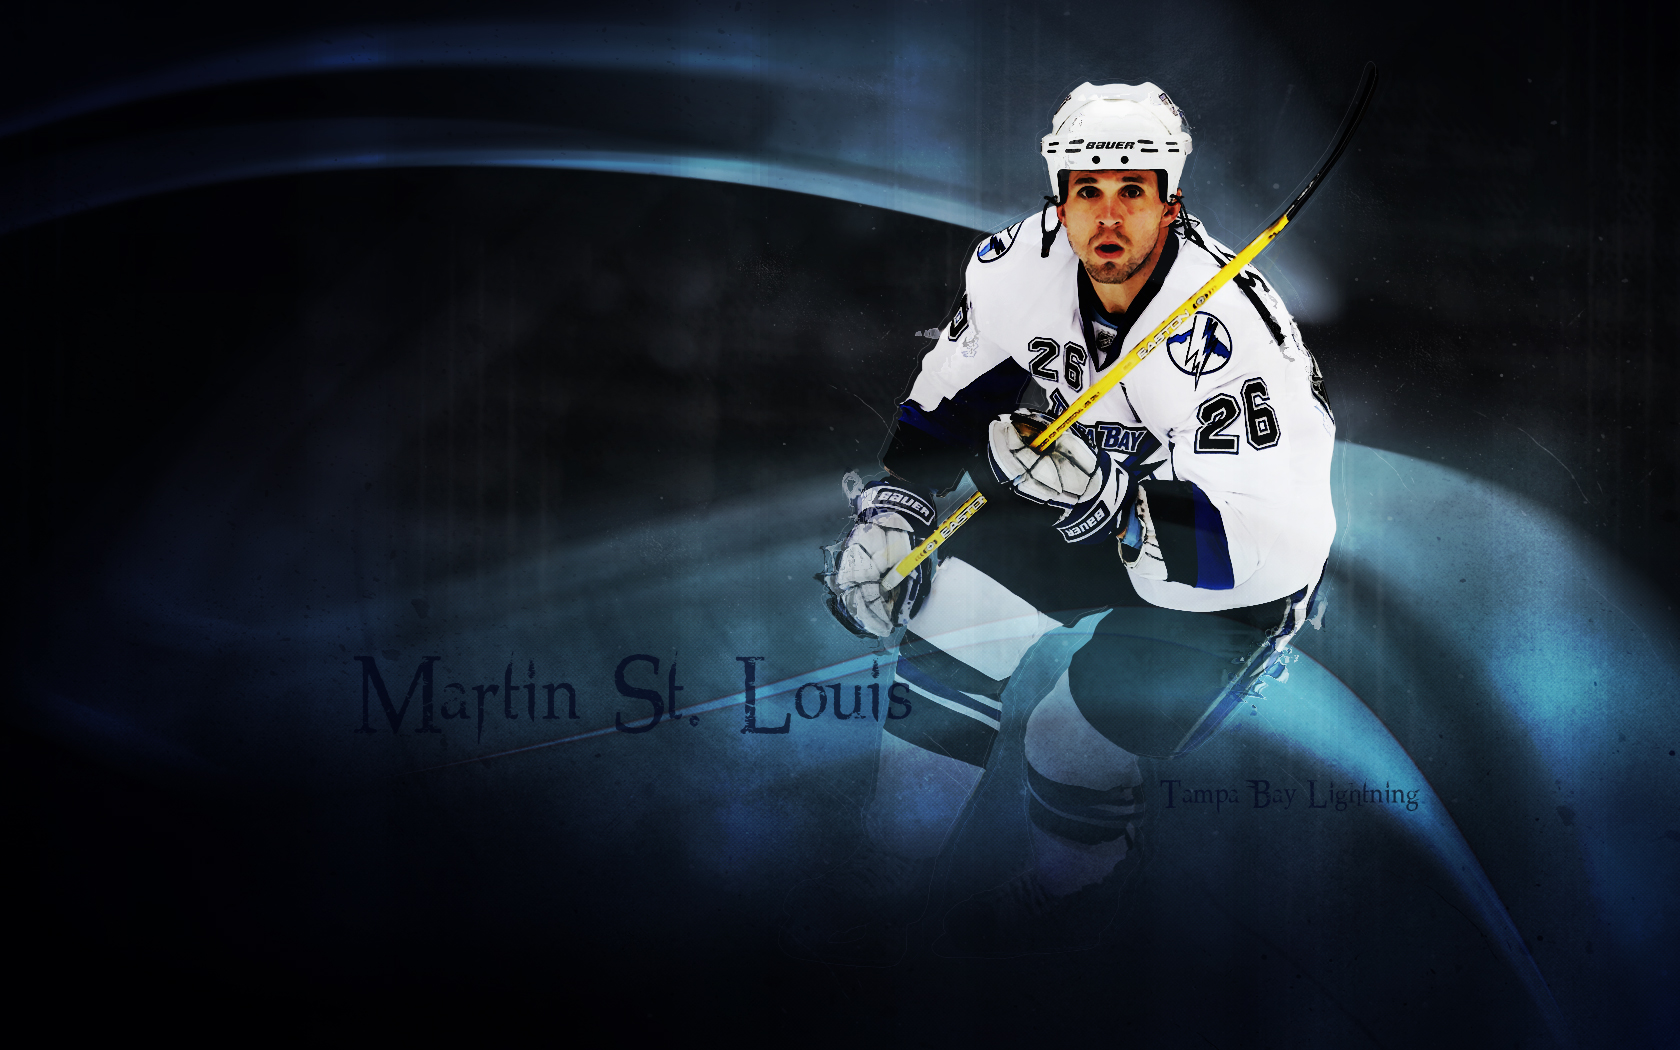 Martin St Louis Tampa Bay Lightning Wallpaper 172062 HD Wallpaper 1680x1050